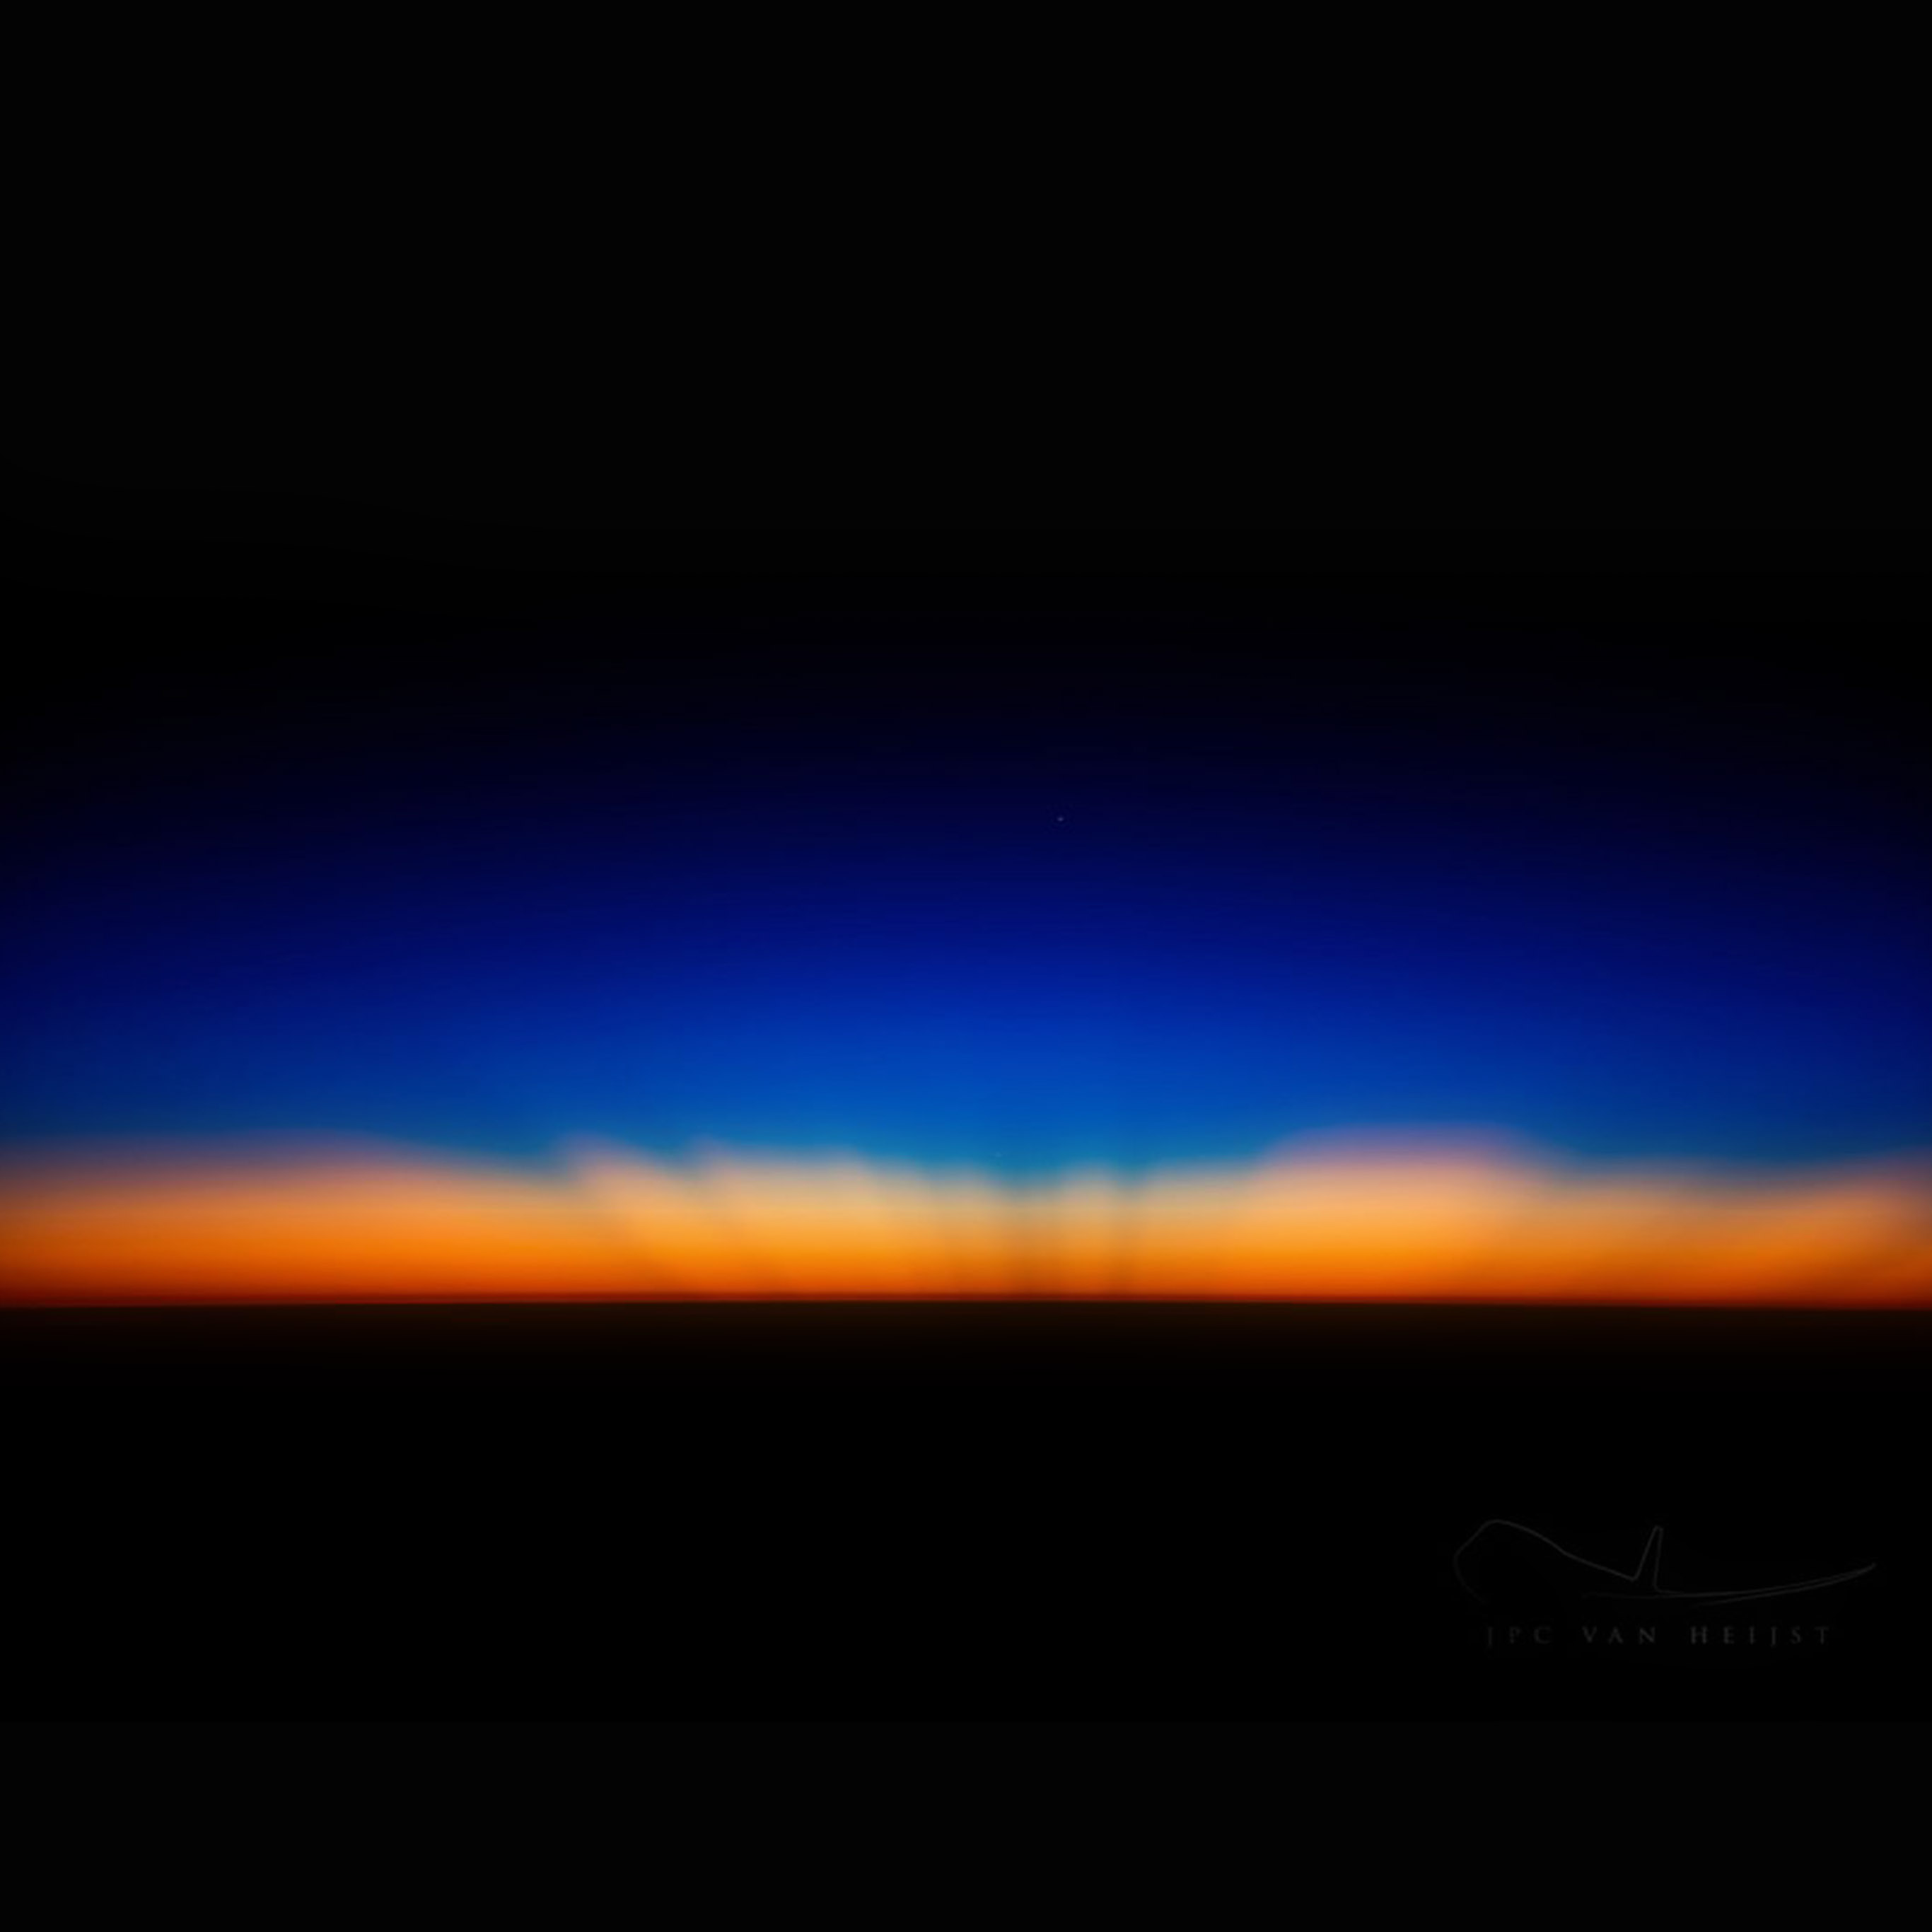 Sk35 Sunset Dark Red Blue Horizontal Blur Gradation Wallpaper